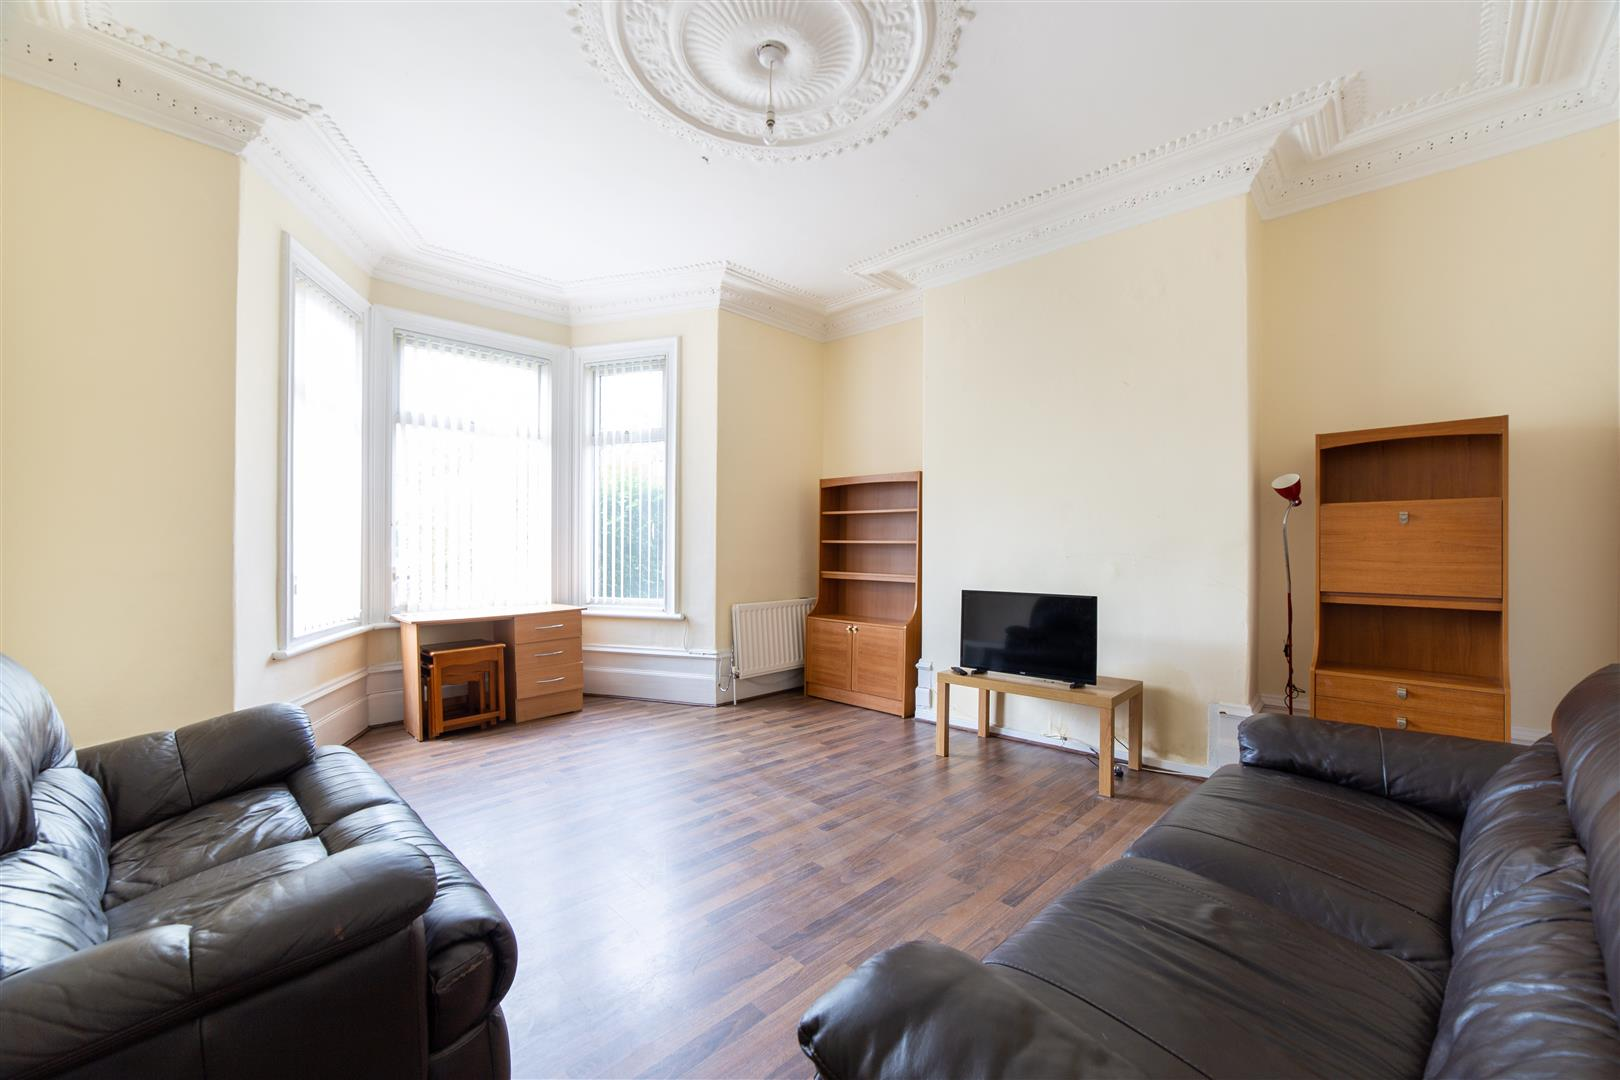 6 bed terraced house to rent in Newcastle Upon Tyne, NE6 5JT - Property Image 1